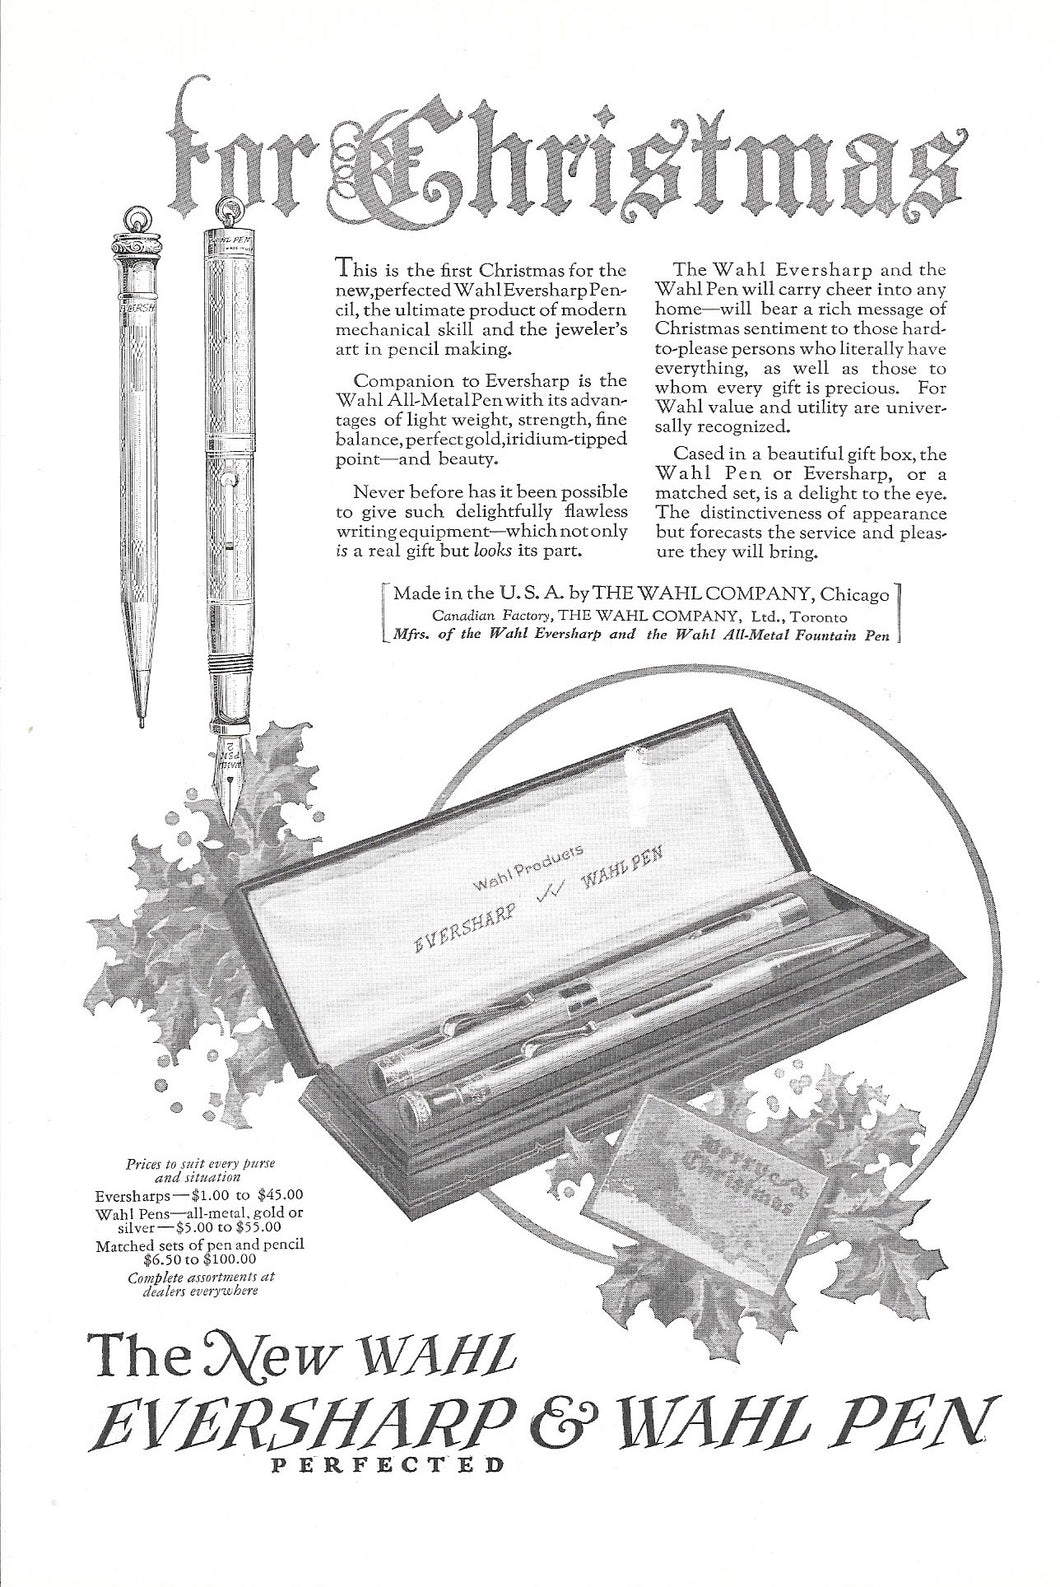 Vintage Magazine Advertising : Eversharp & Wahl Pen, Black & White